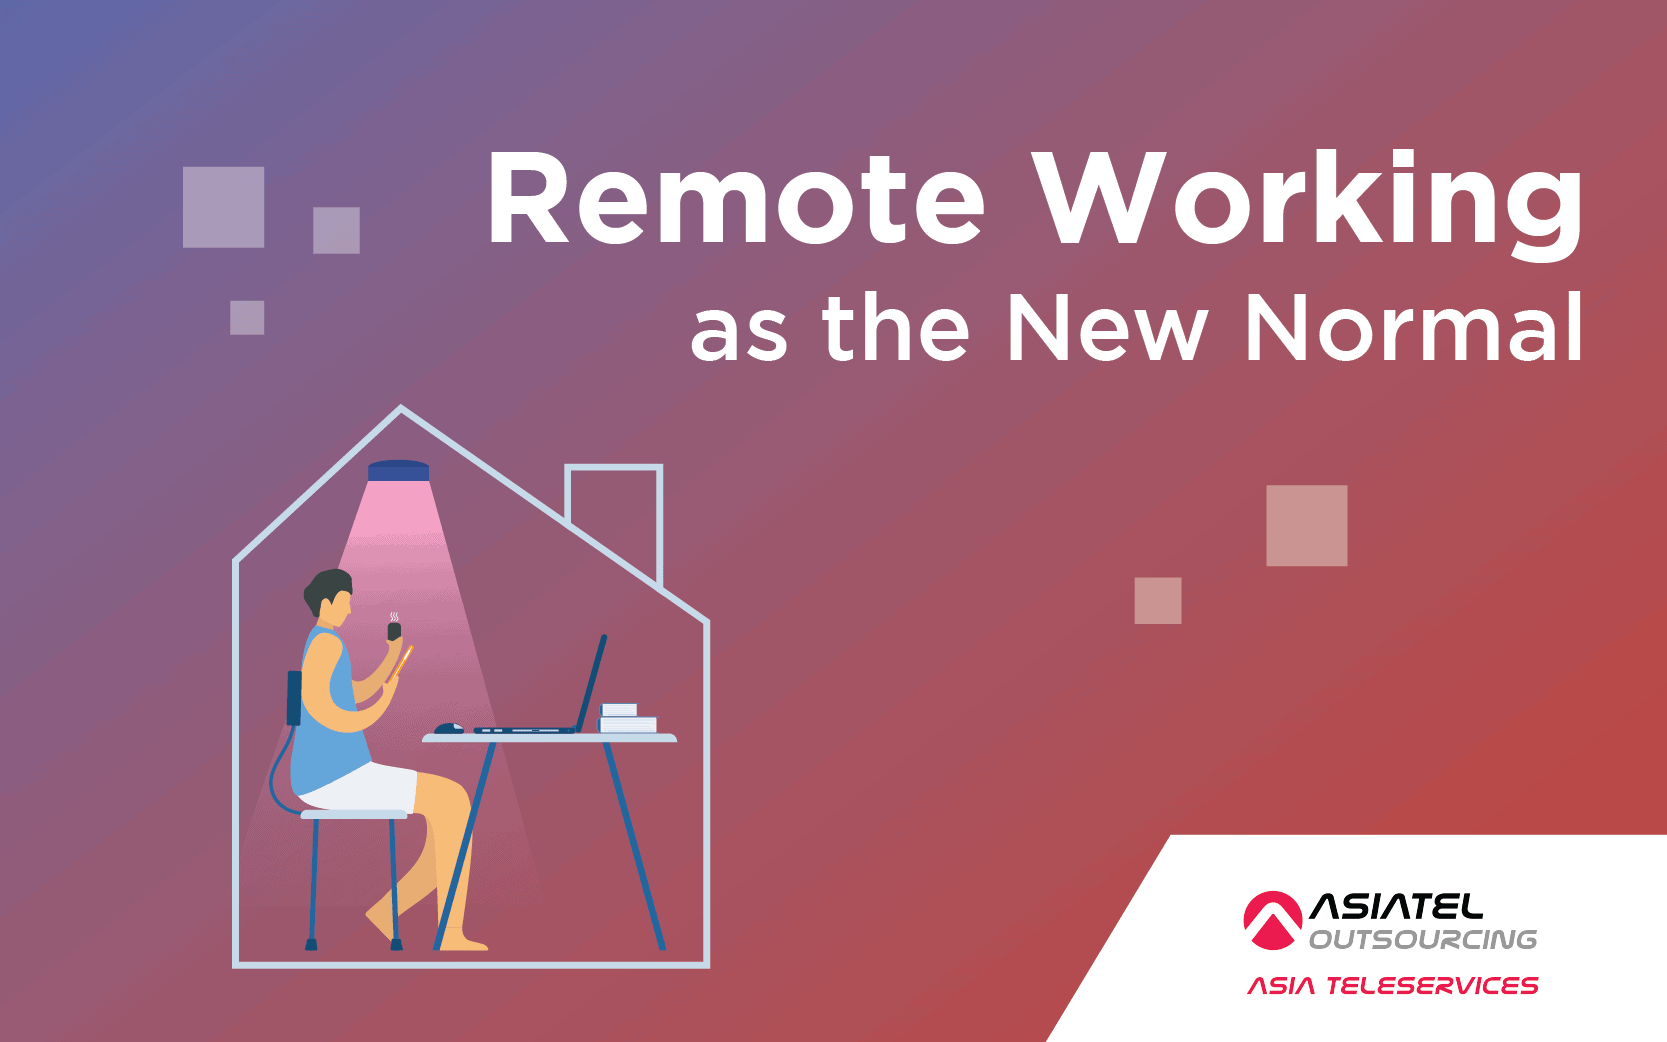 Remote Working as the New Normal